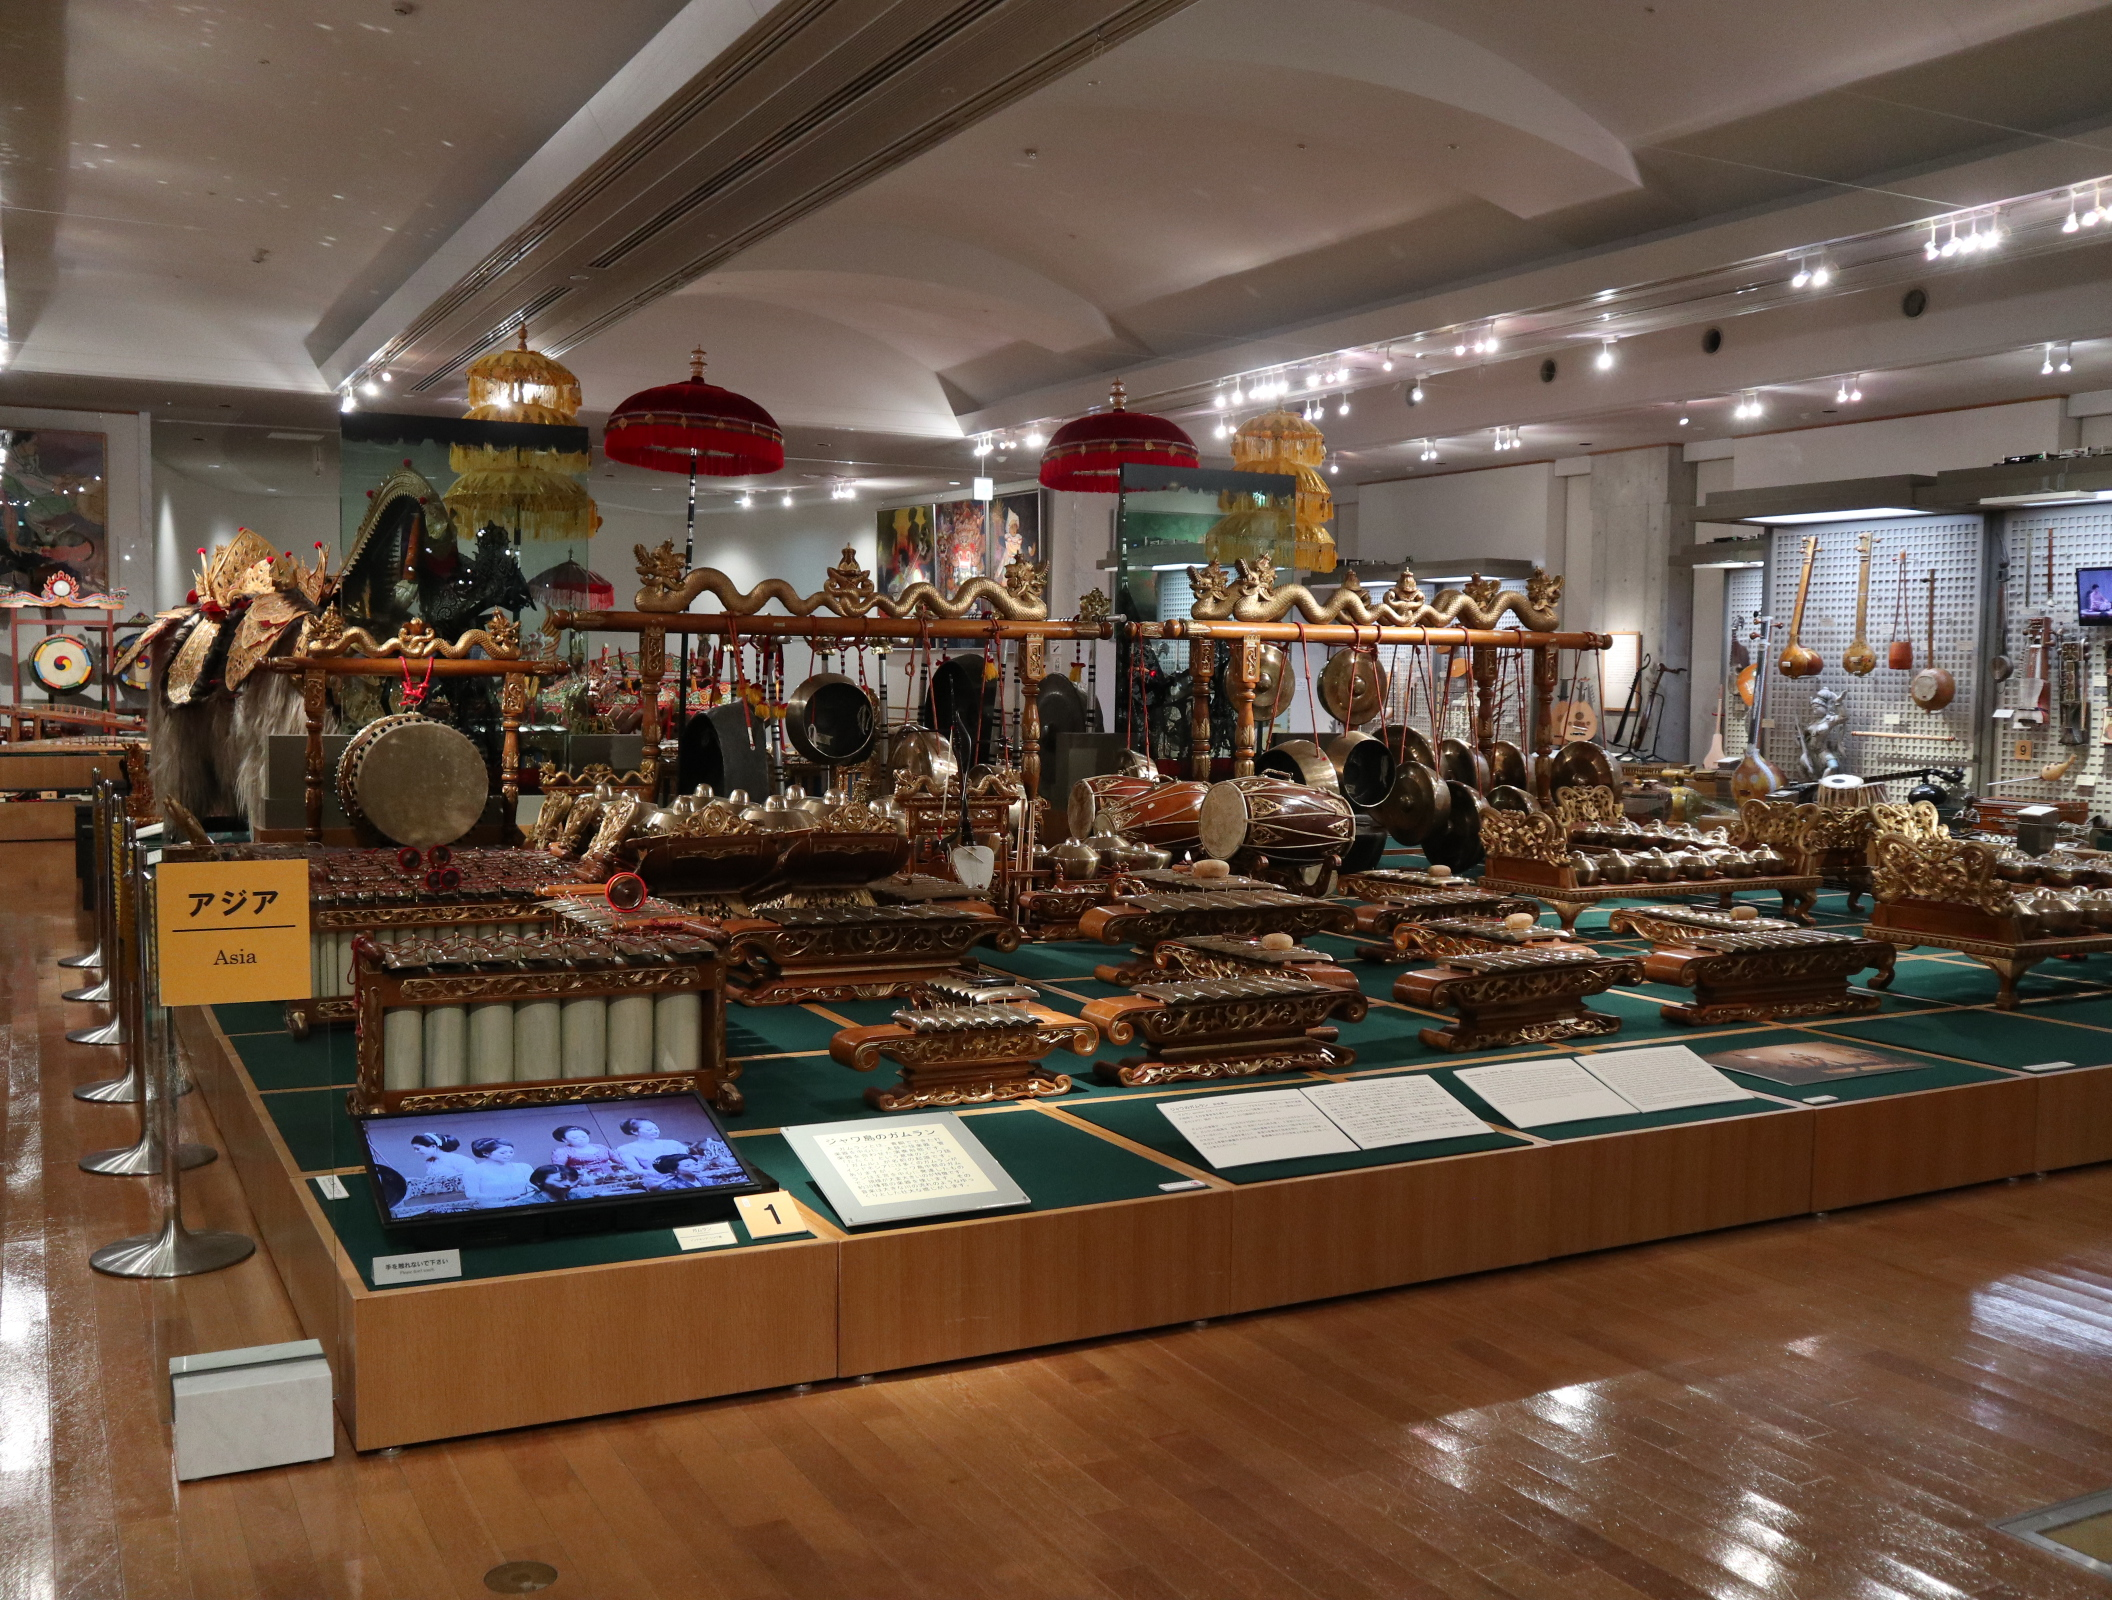 The Asian section, including a large display of gamelan